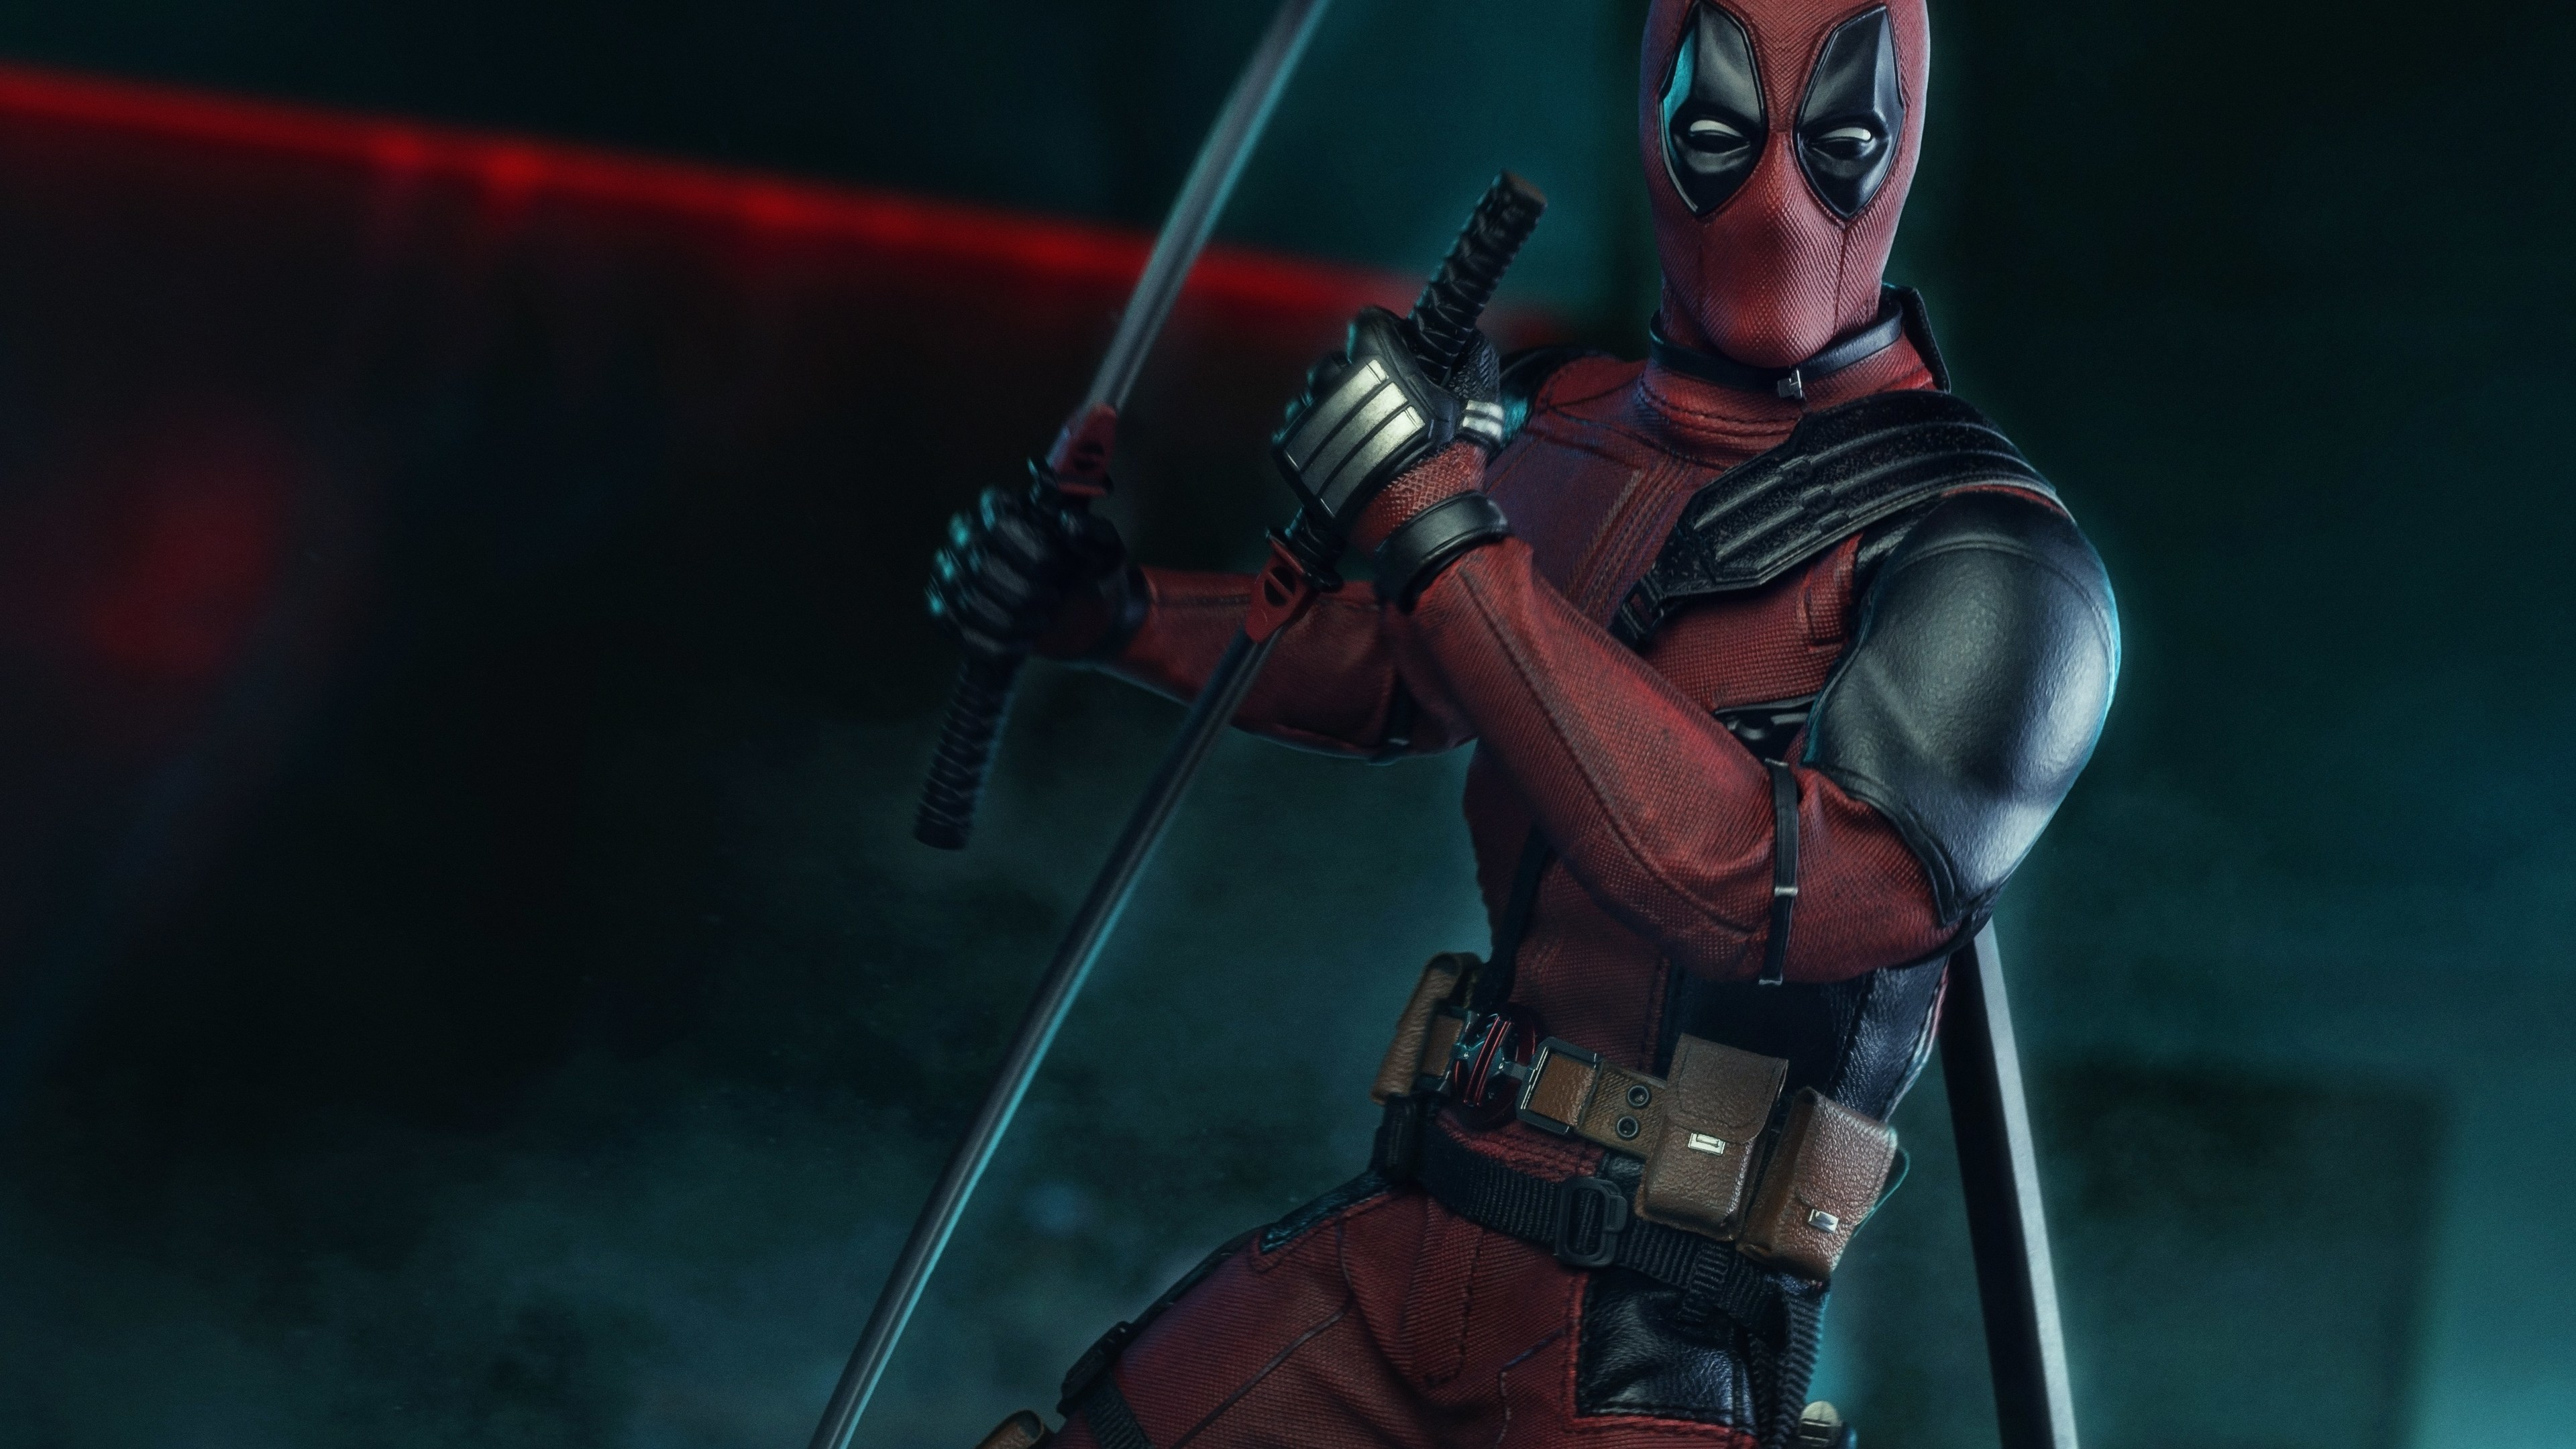 deadpool with swords 4k 1547319666 - Deadpool With Swords 4k - superheroes wallpapers, hd-wallpapers, deadpool wallpapers, 4k-wallpapers